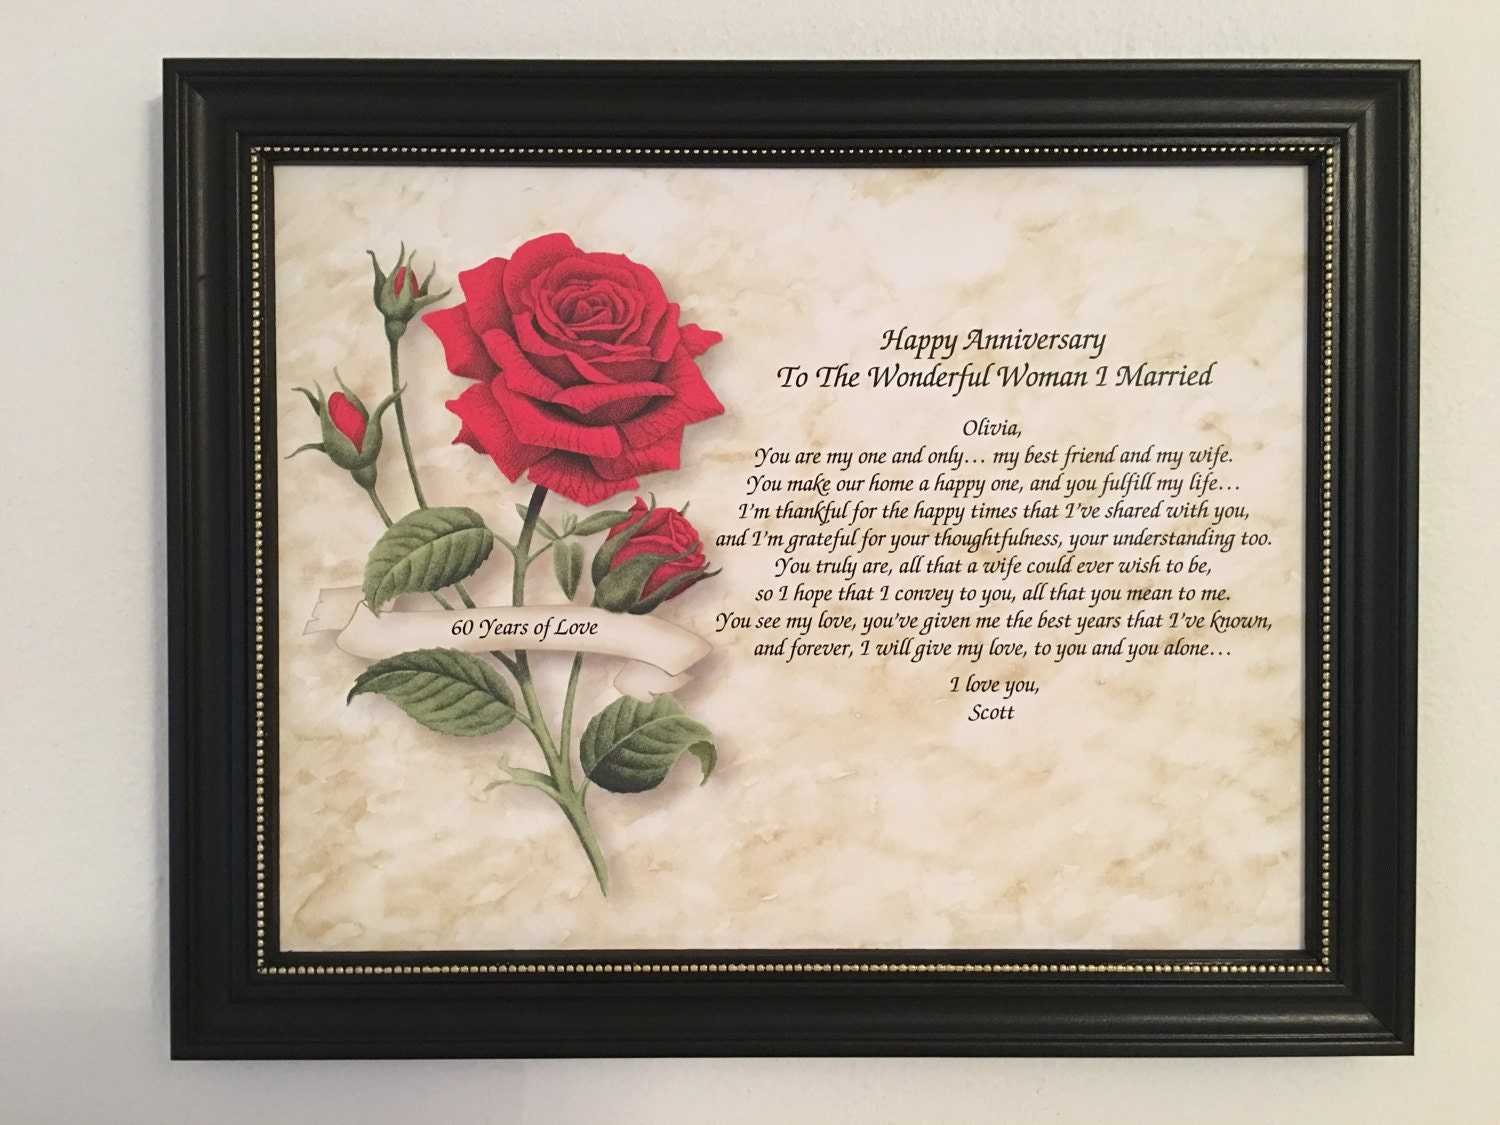 60 Years Wedding Anniversary Gifts: 60th Anniversary Gift For Wife Love Poem Personalized